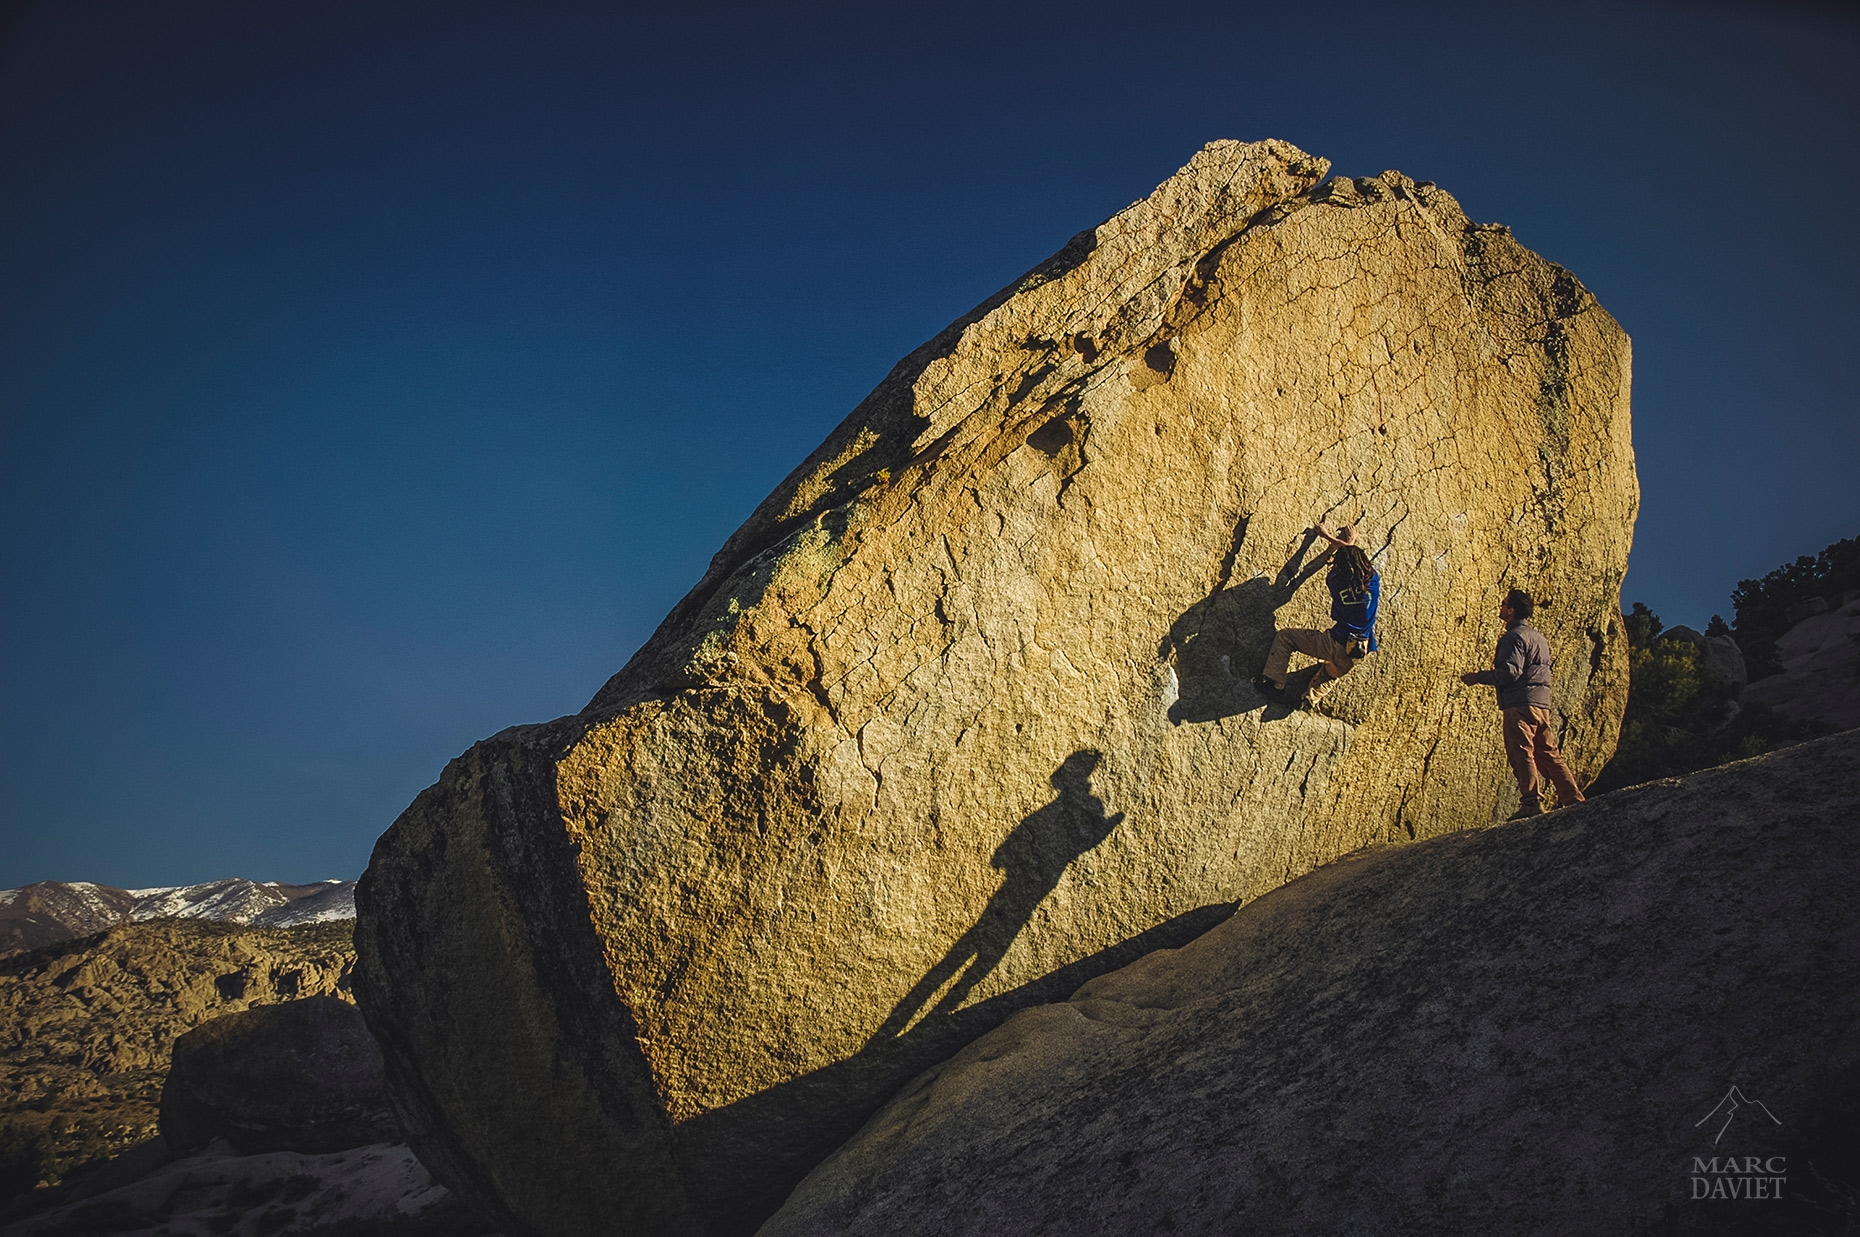 Bouldering - Buttermilk - Marc Daviet Photography